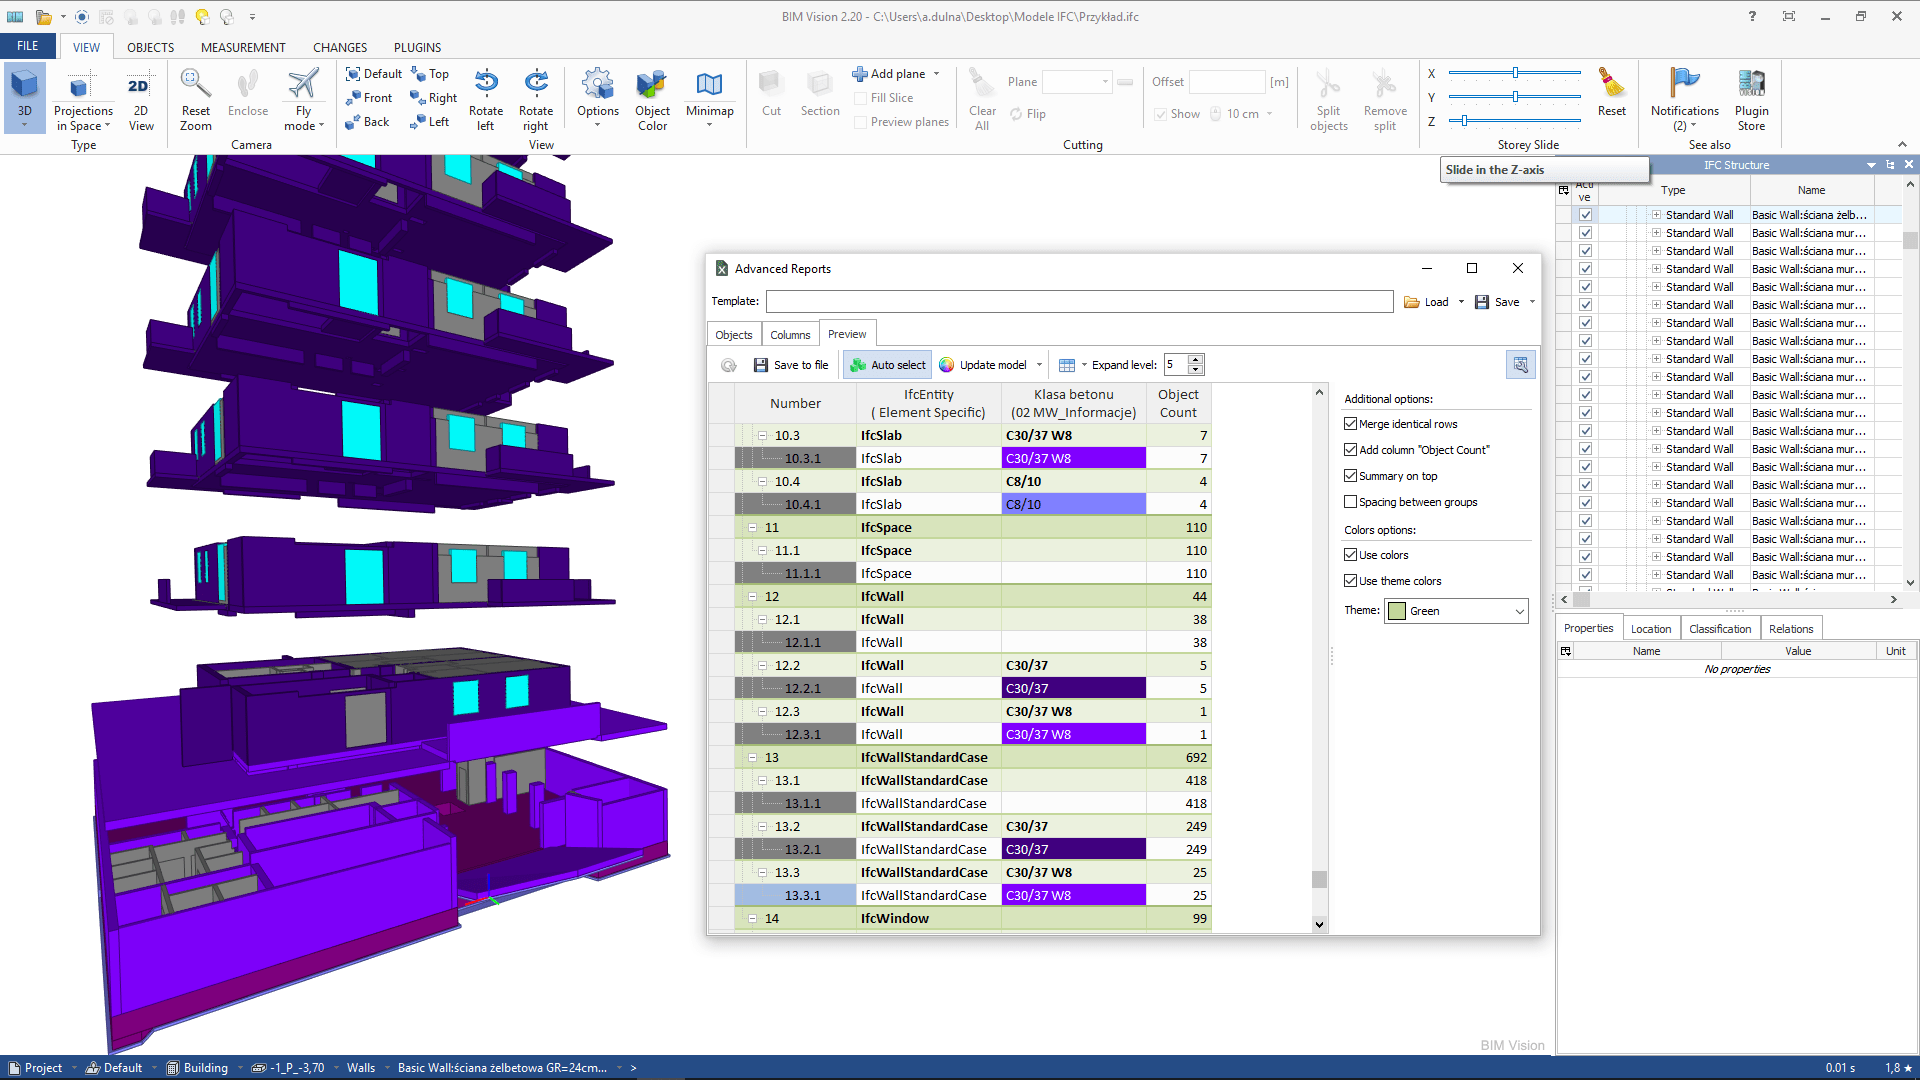 bim-vision-advanced-reports-new-version